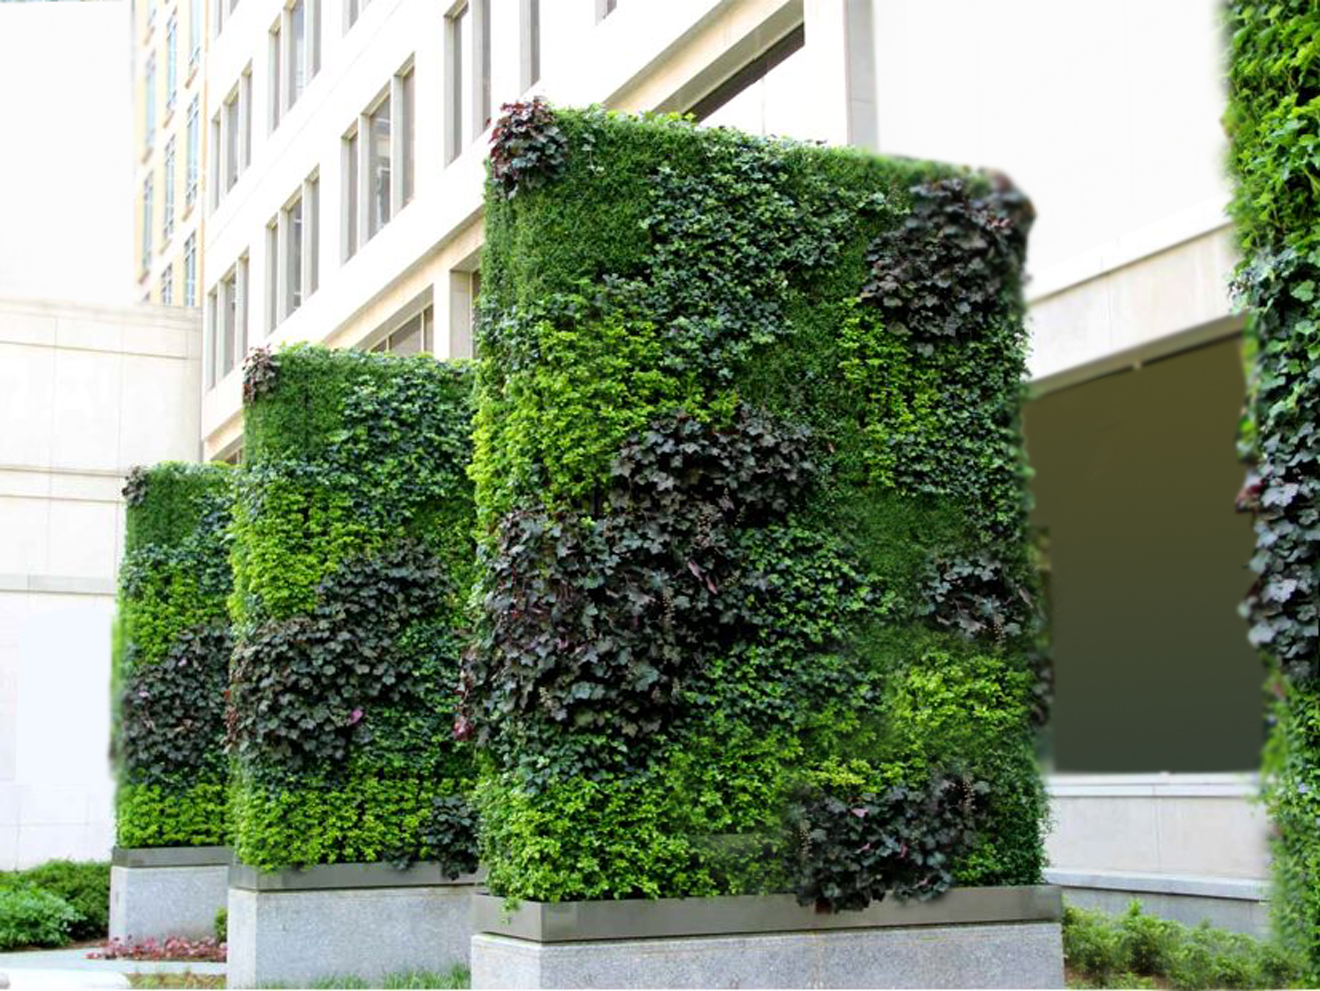 World class green wall vertical garden by technic garden for Vertical garden wall systems